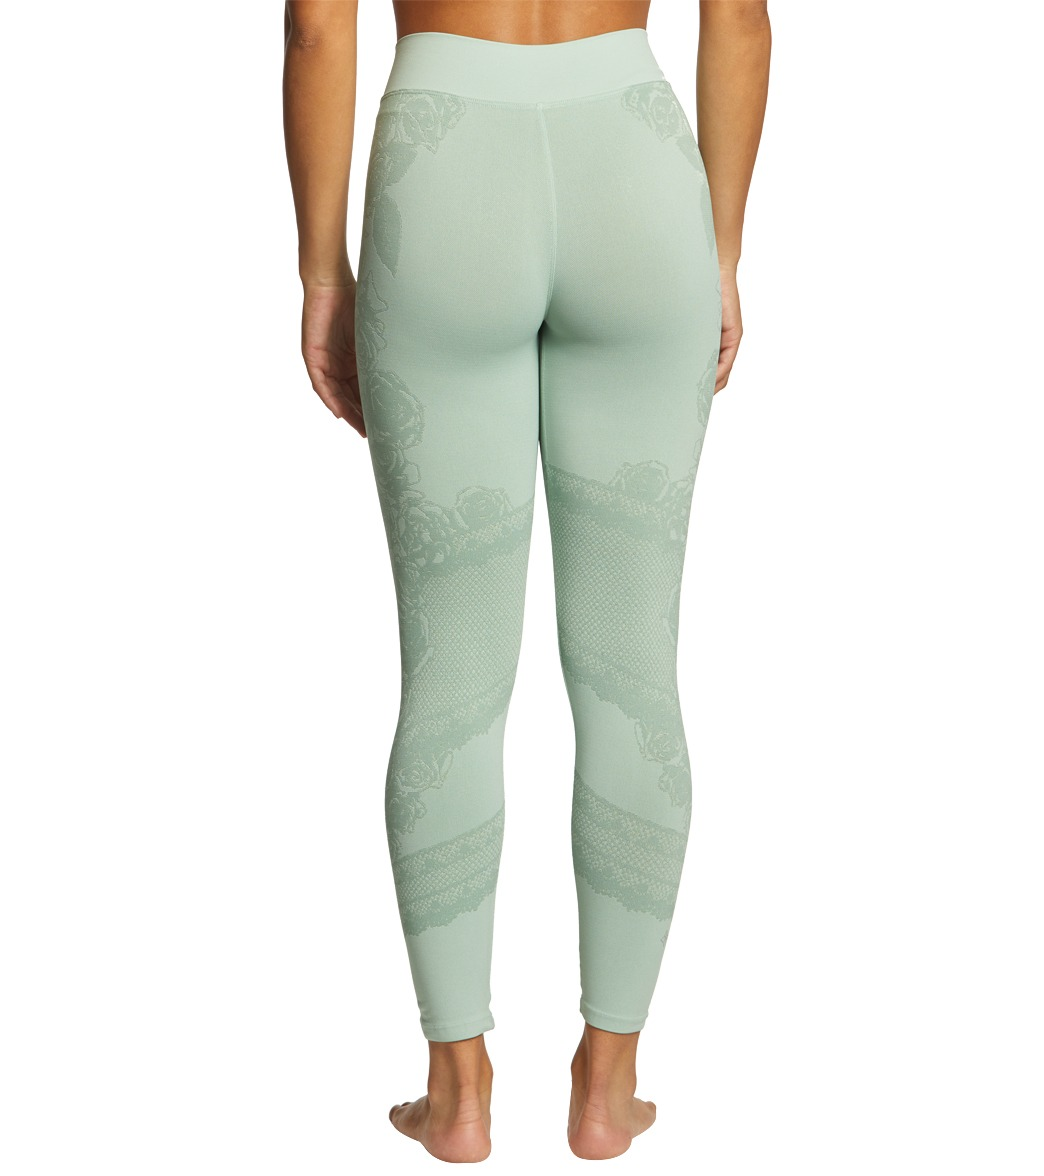 f804bc79963cb NUX Eden Seamless 7/8 Yoga Leggings at YogaOutlet.com - Free Shipping